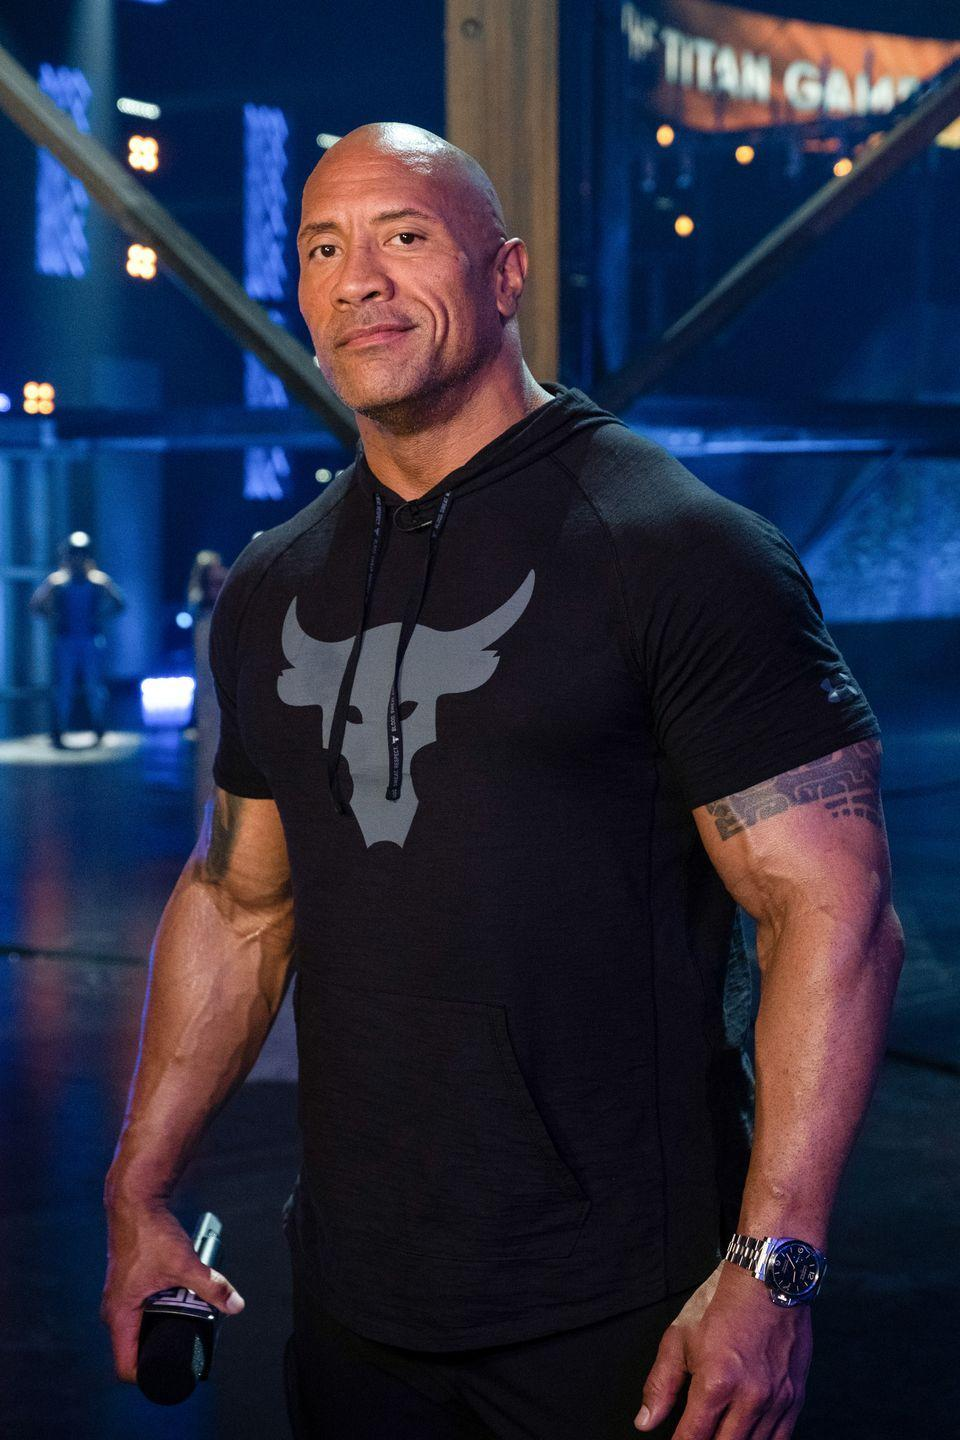 """<p>Still looking like he did back in his WWE days, Johnson has expanded his career to include <a href=""""https://www.menshealth.com/entertainment/g32336205/the-titan-games-contestants-season-2/"""" rel=""""nofollow noopener"""" target=""""_blank"""" data-ylk=""""slk:producing television shows"""" class=""""link rapid-noclick-resp"""">producing television shows</a> and <a href=""""https://www.menshealth.com/entertainment/g32842774/40-celebrities-business-moguls/"""" rel=""""nofollow noopener"""" target=""""_blank"""" data-ylk=""""slk:launching"""" class=""""link rapid-noclick-resp"""">launching</a> his own tequila. </p>"""